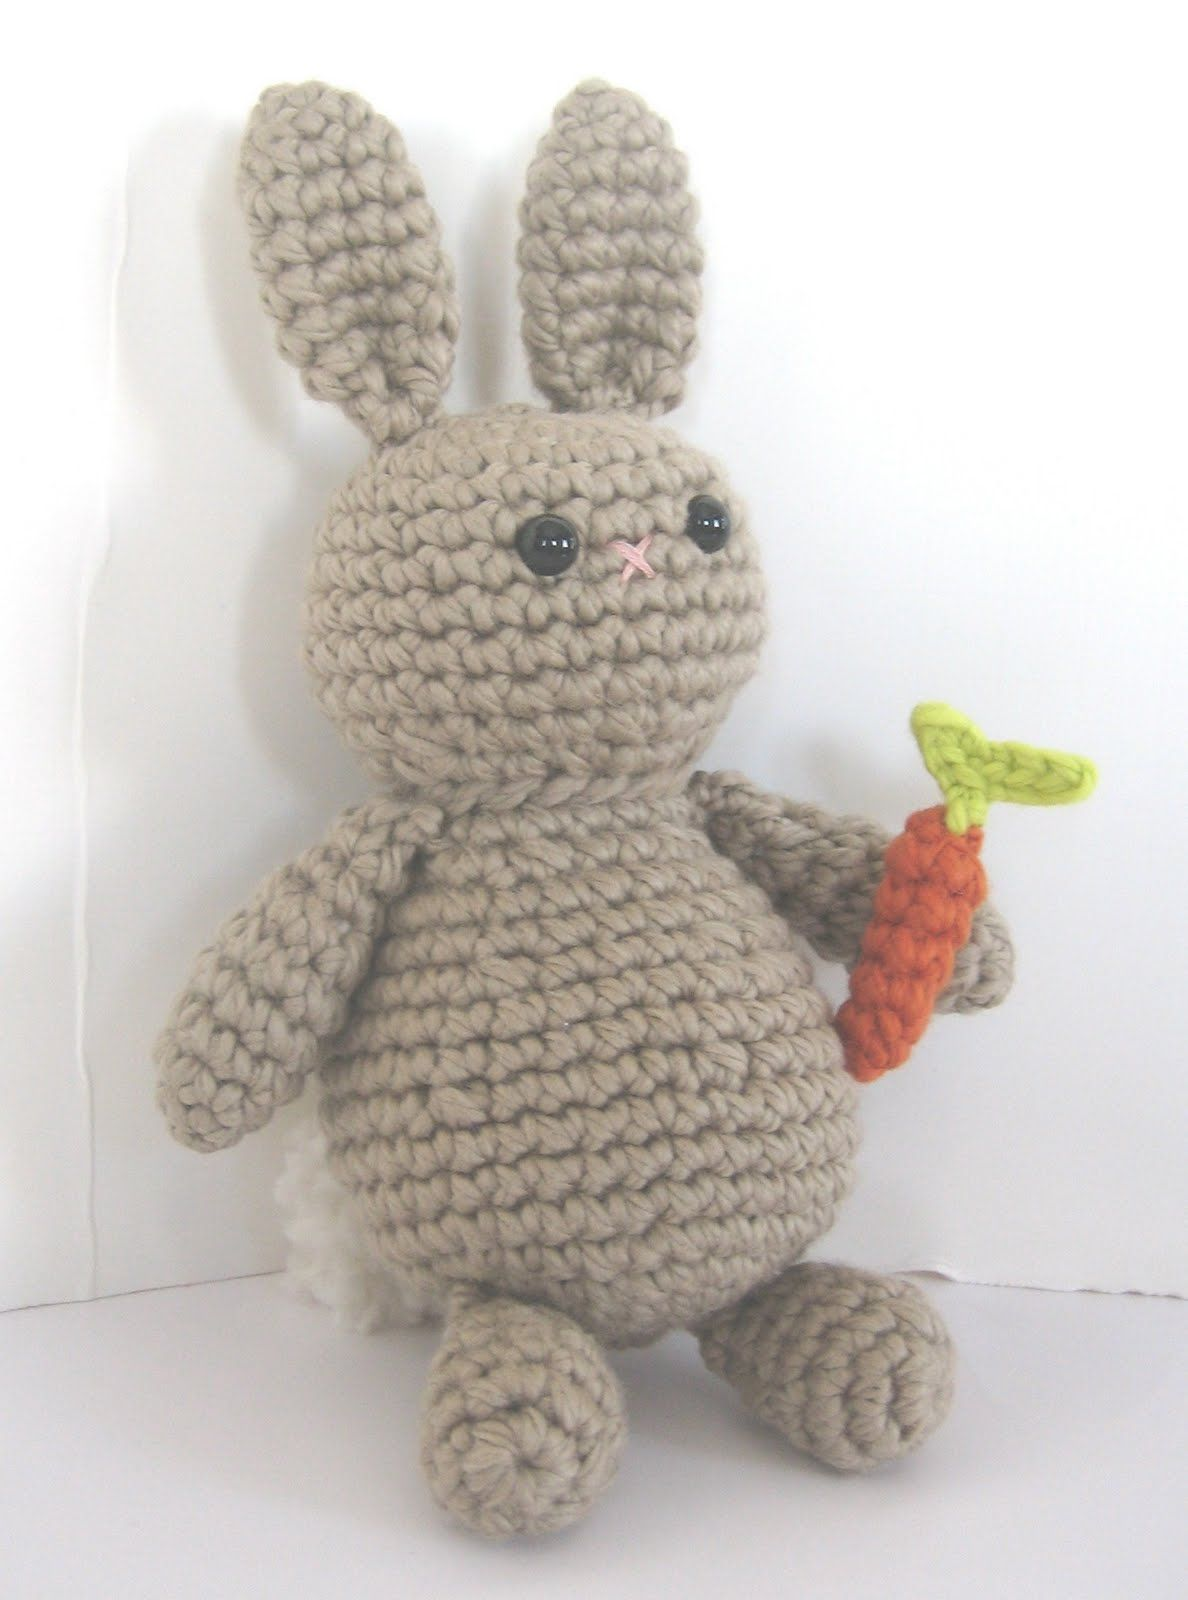 Free crochet pattern: Patches the Carrot Loving Bunny